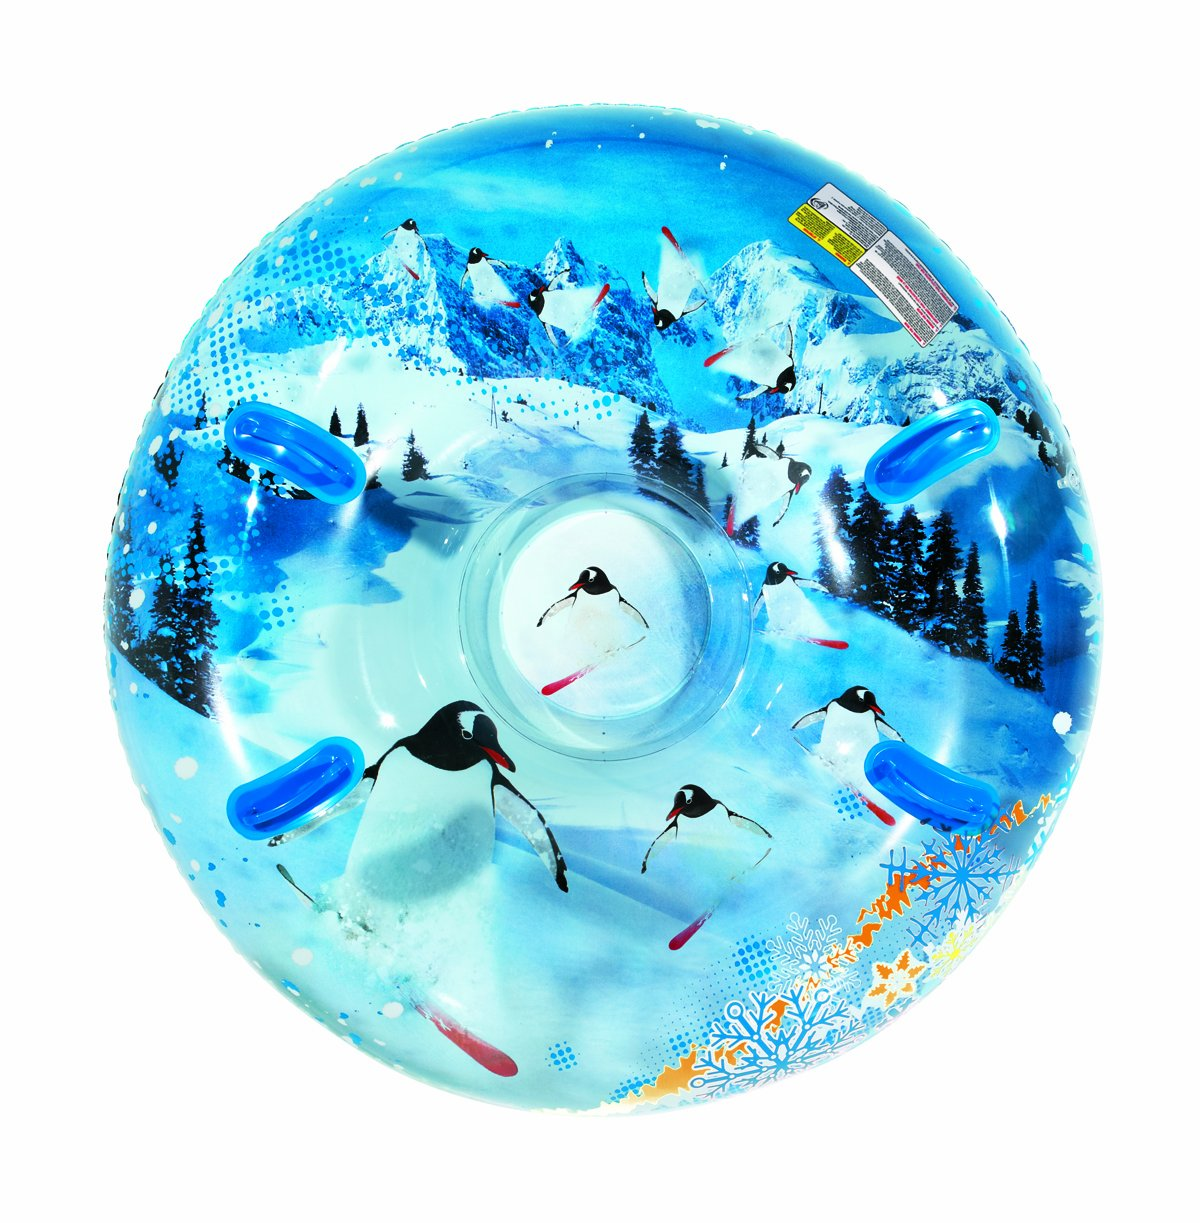 Aqua Leisure Uncle Bob's Winter Inflatable Round Air Penguin Snow Tube Sled for 2 (Two) Riders on Sledding Hill, Fast yet Safe, with 4 (Four) Big Durable Grip Handles and Repair Kit, 48''